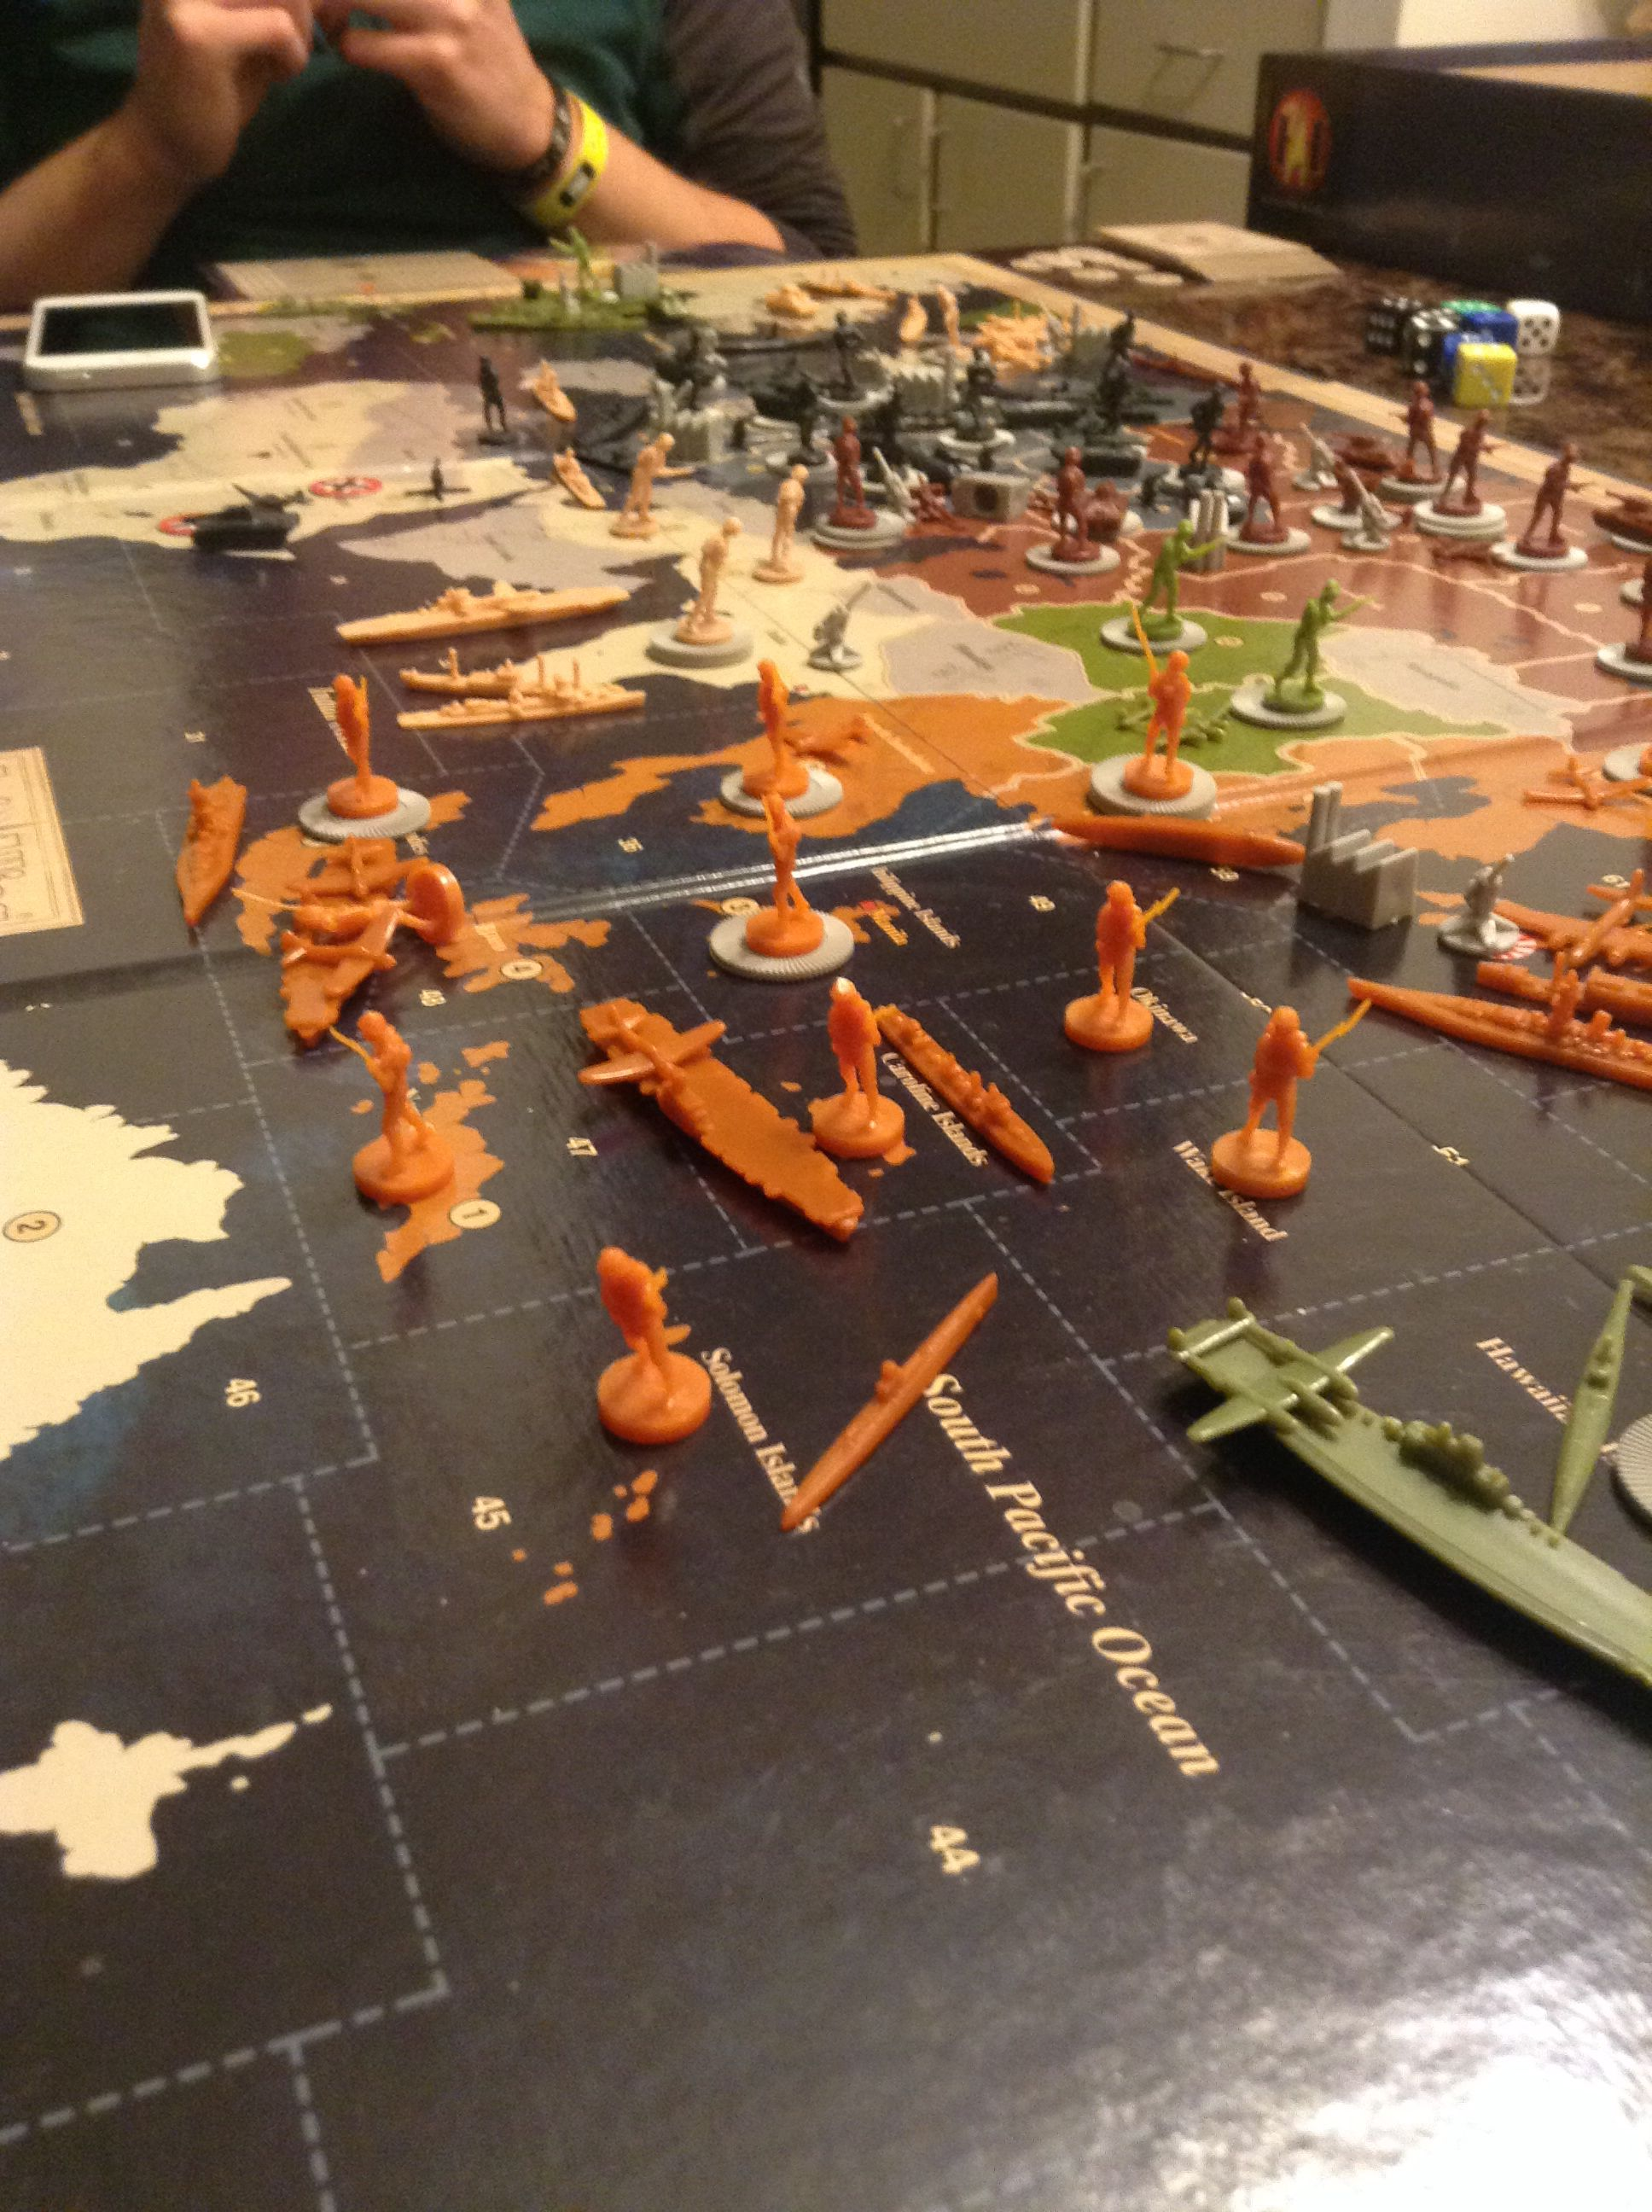 Axis and Allies Revised edition! One of my favorite board